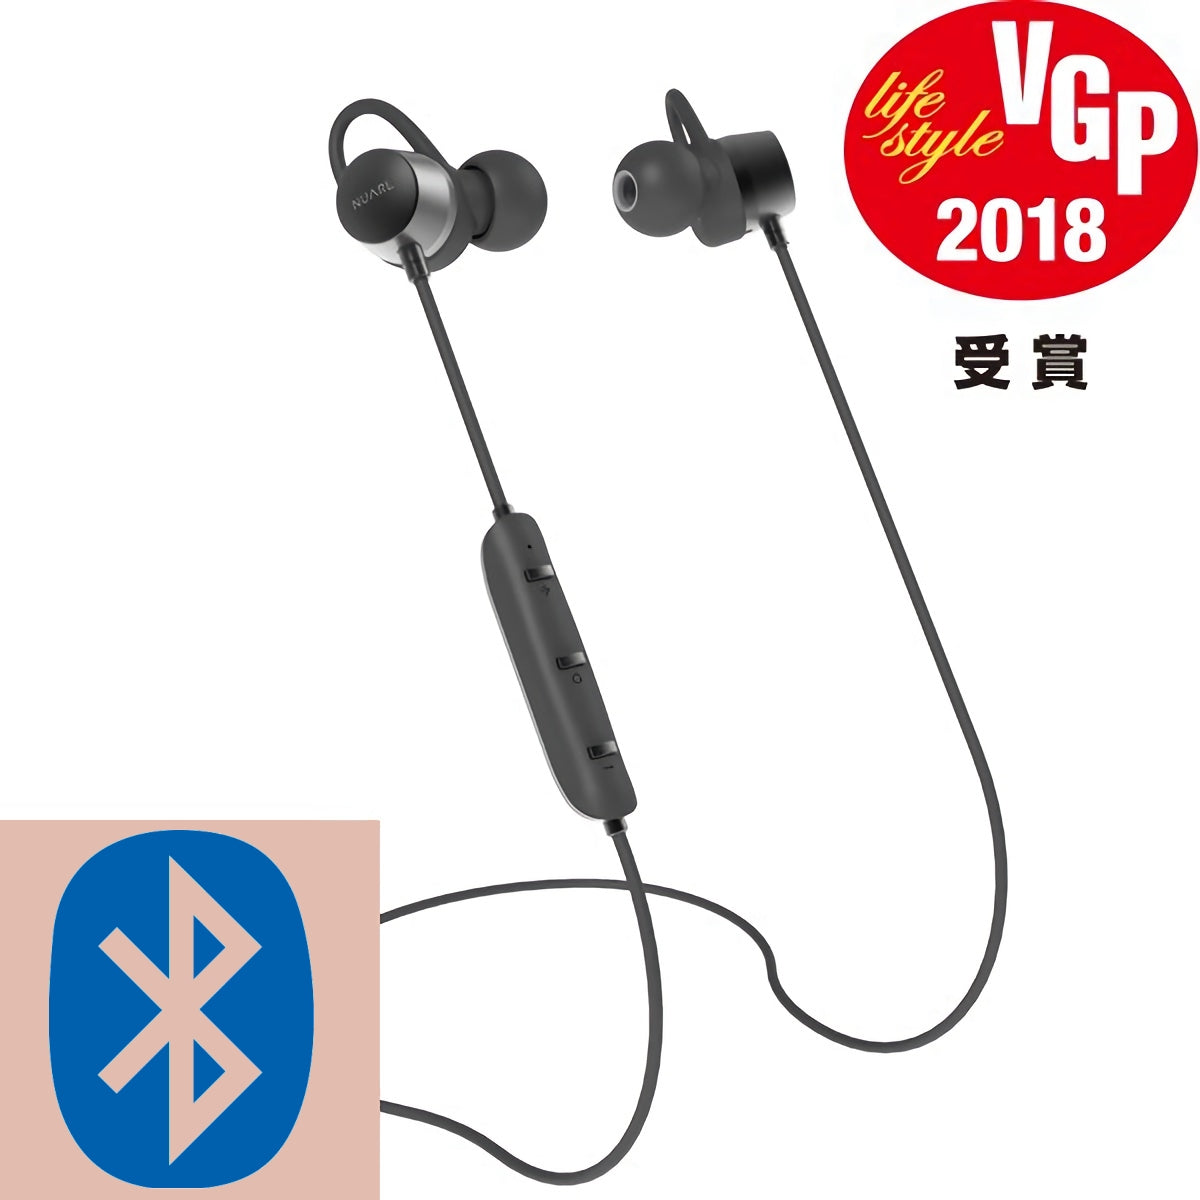 Nuarl NB20 - Jaben - The Little Headphone Store